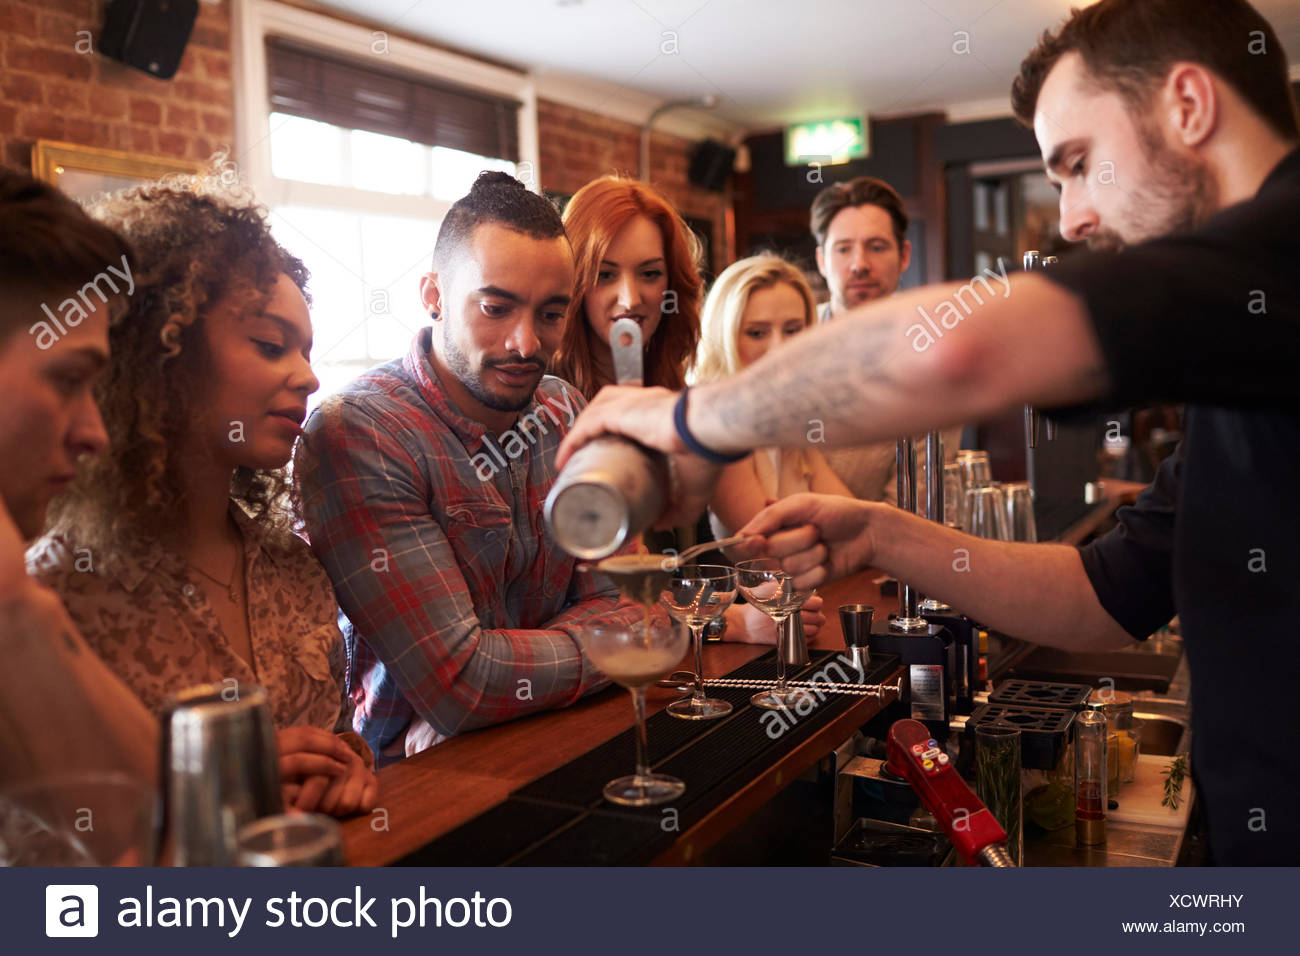 Bartender Giving Cocktail Making Lesson to Friends In Bar Stock Photo